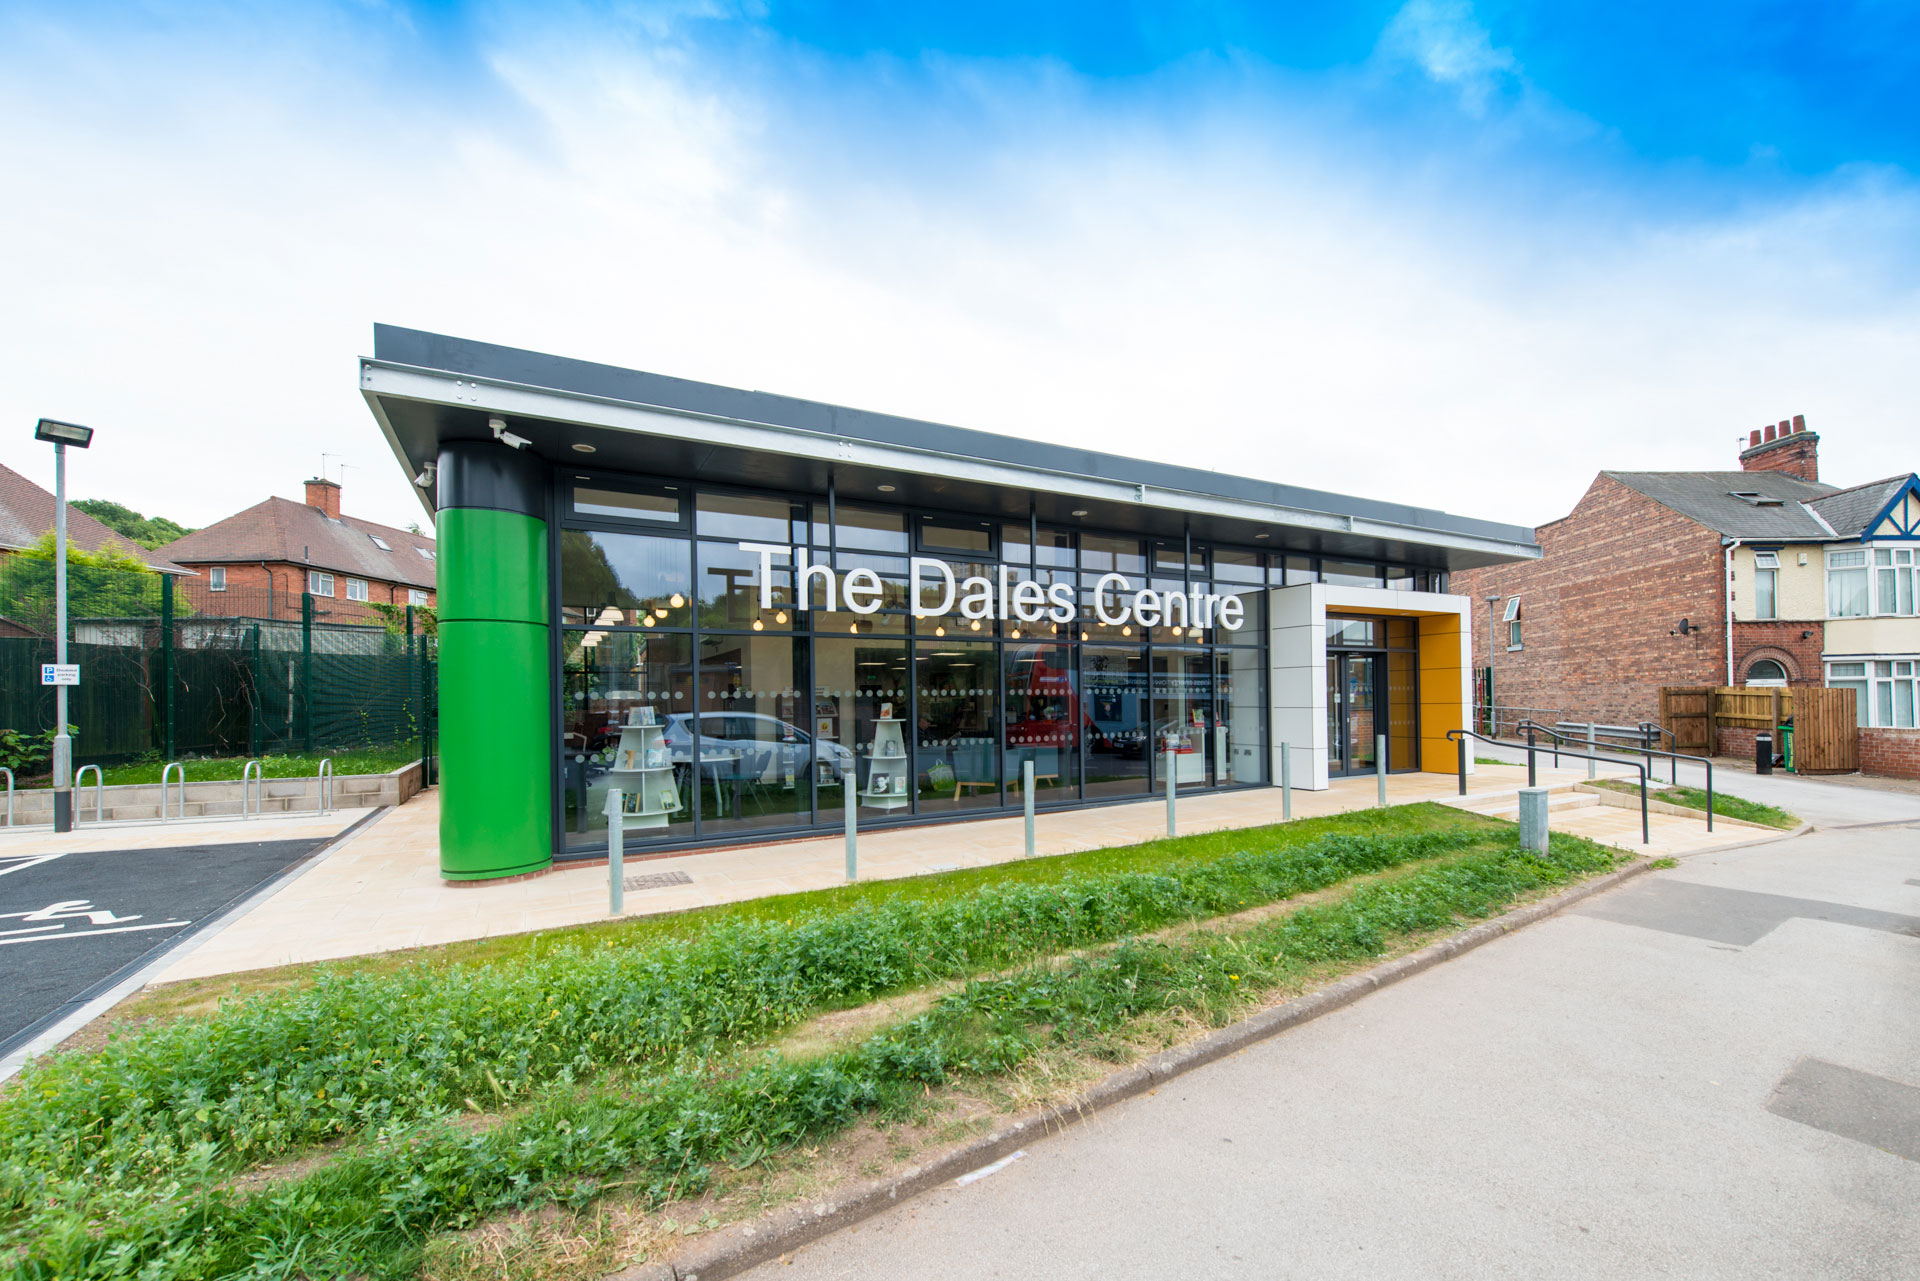 The Dales Centre